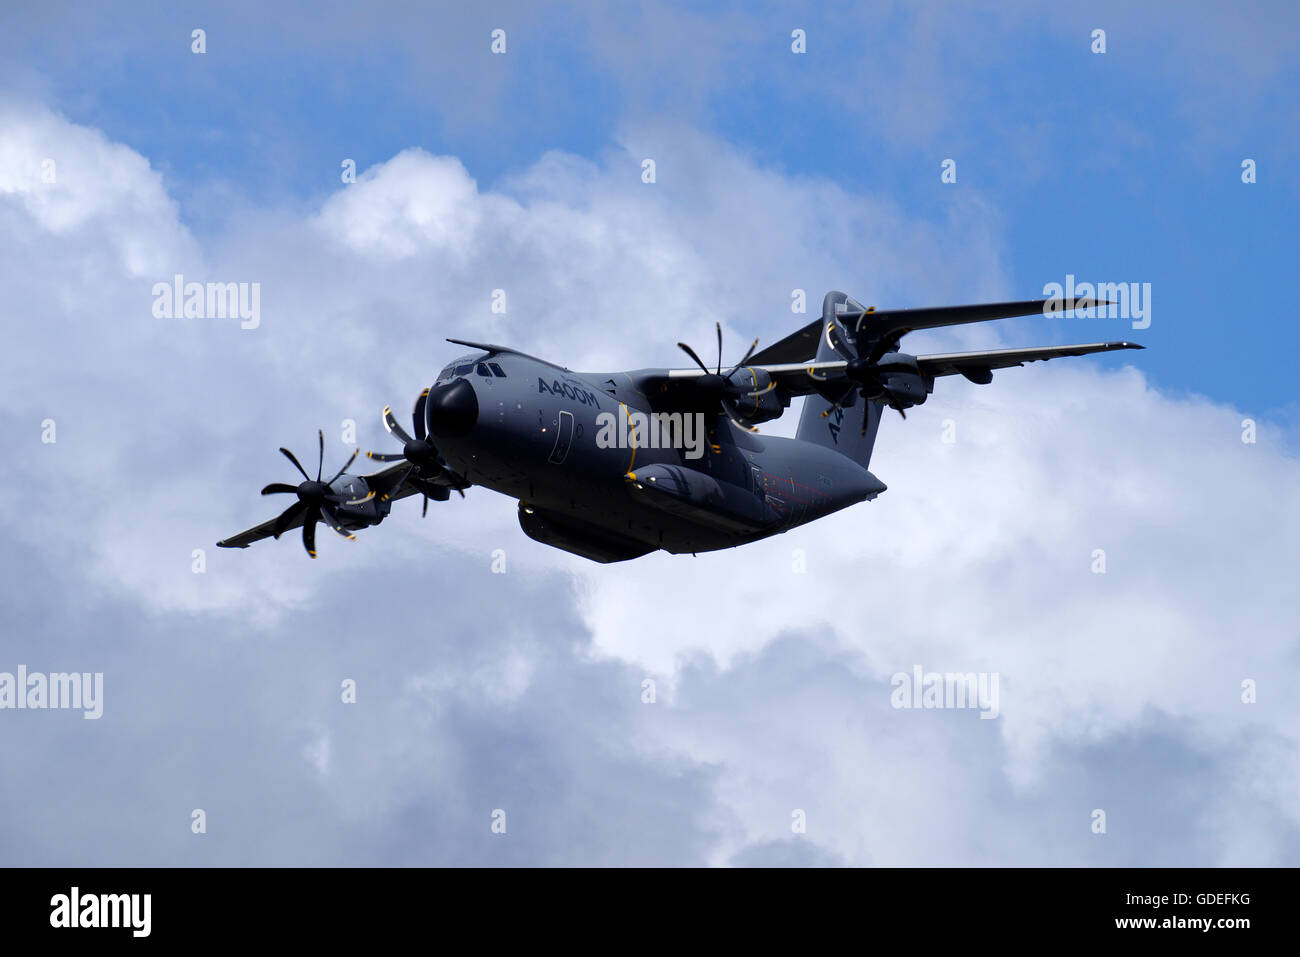 Airbus A400m at RIAT, RAF Fairford - Stock Image